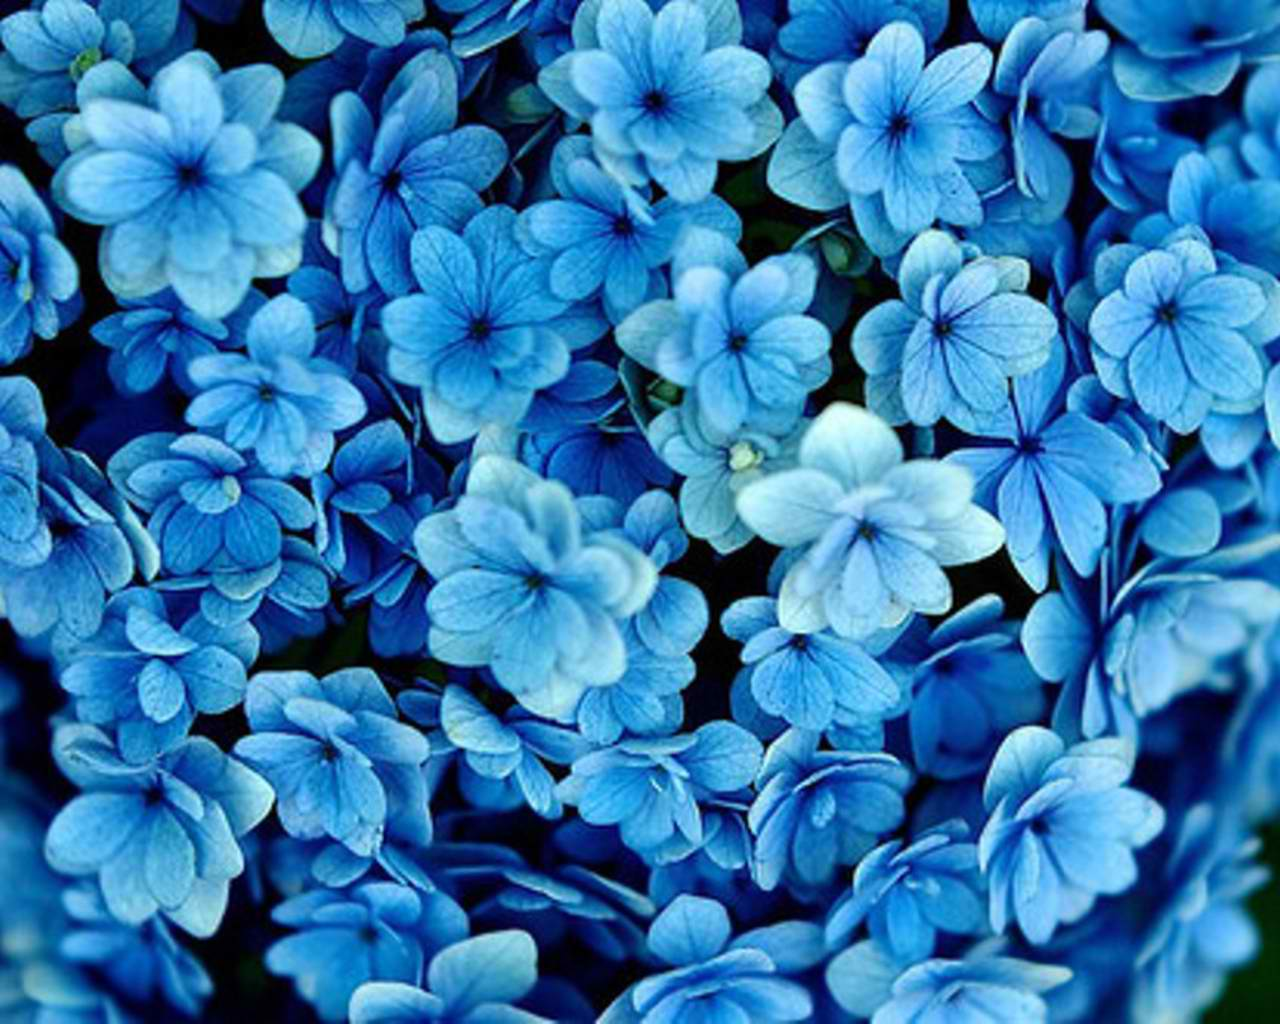 Blue flowers meaning 38 background hdflowerwallpaper blue flowers meaning desktop background izmirmasajfo